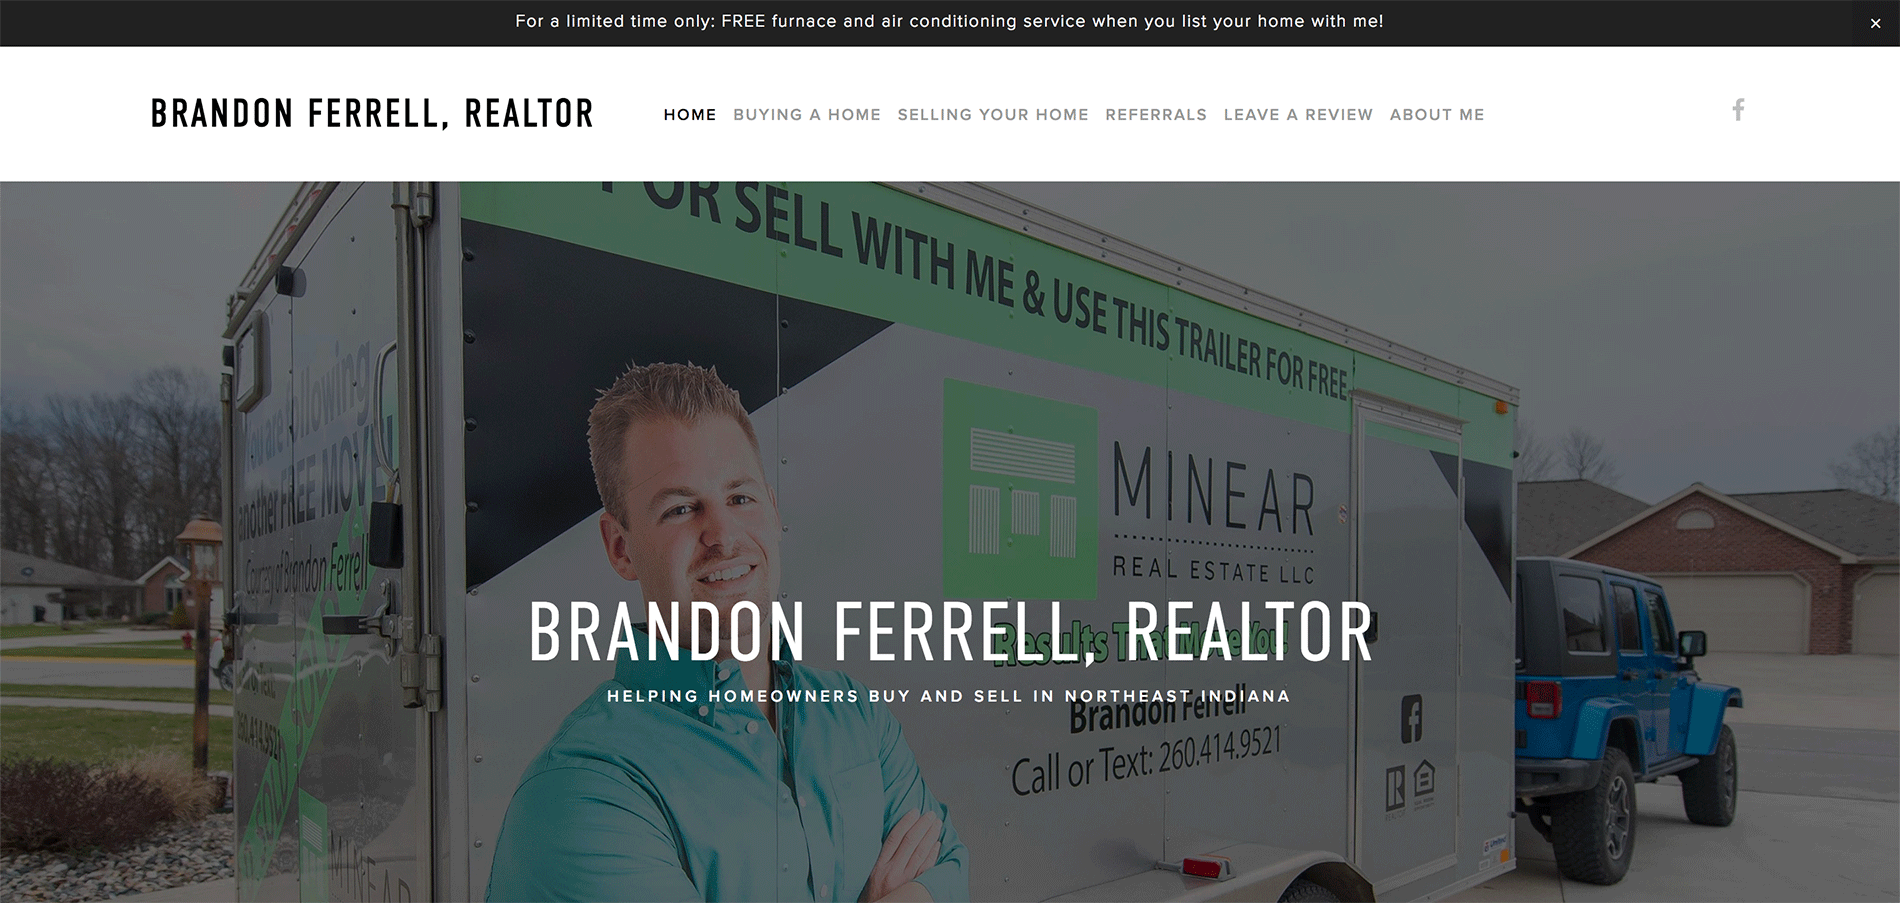 ferrell-home-page.png